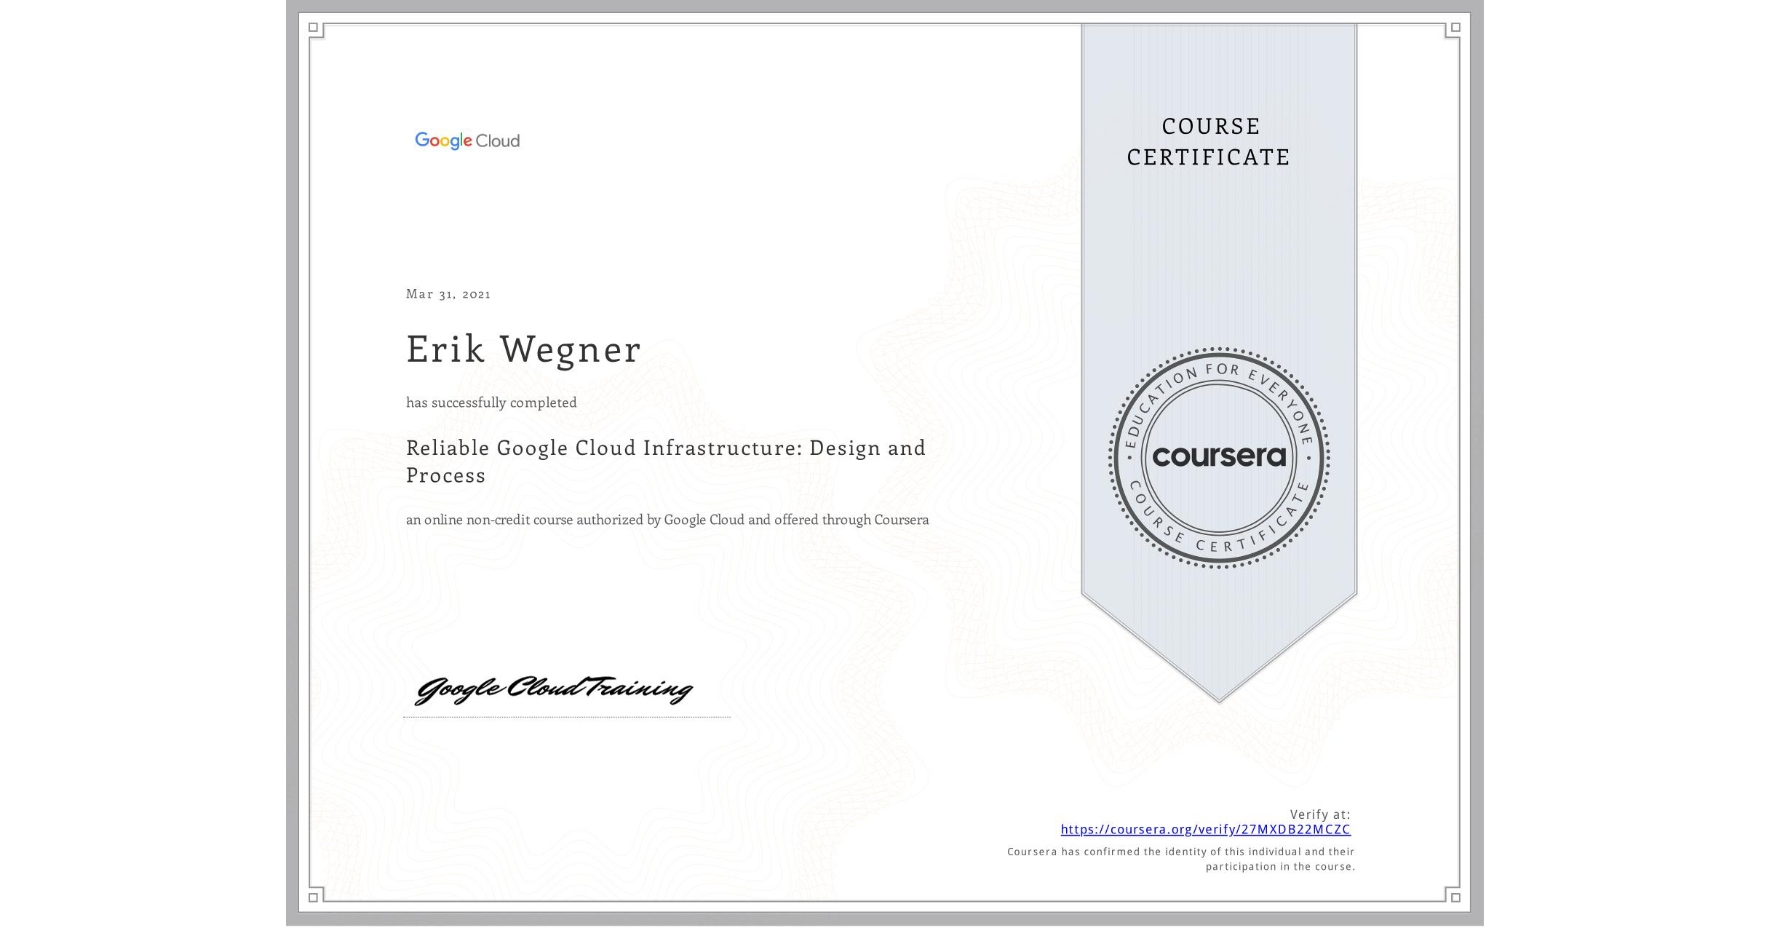 View certificate for Erik Wegner, Reliable Google Cloud Infrastructure: Design and Process, an online non-credit course authorized by Google Cloud and offered through Coursera